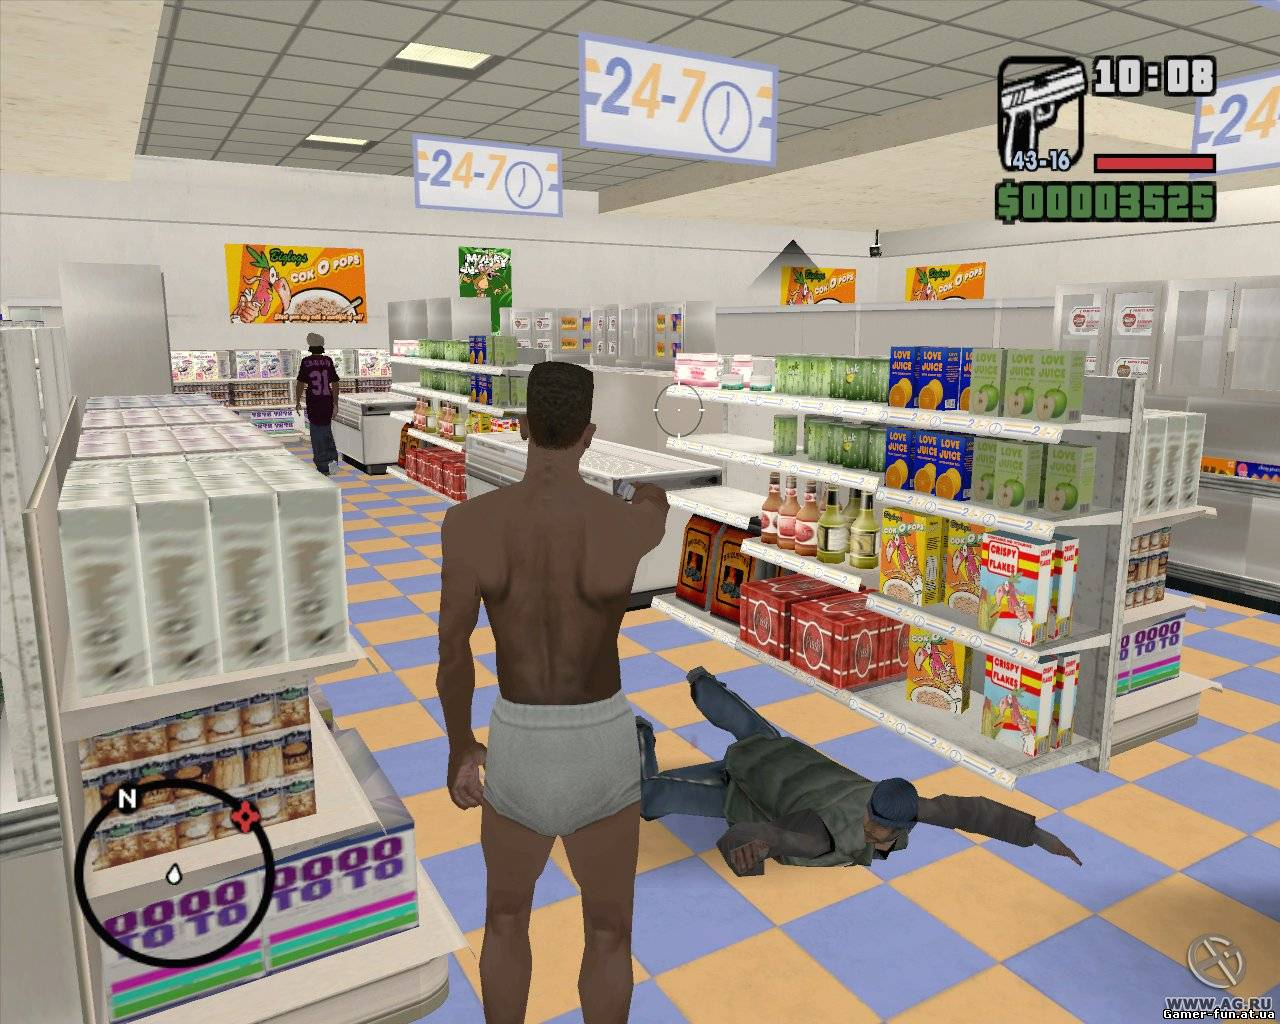 Grand Theft Auto - San Andreas (2005) Русская версия [RePack], скриншоты Grand Theft Auto - San Andreas (2005) Русская версия [RePack], скачать Grand Theft Auto - San Andreas (2005) Русская версия [RePack], картинки Grand Theft Auto - San Andreas (2005) Русская версия [RePack], постер Grand Theft Auto - San Andreas (2005) Русская версия [RePack]